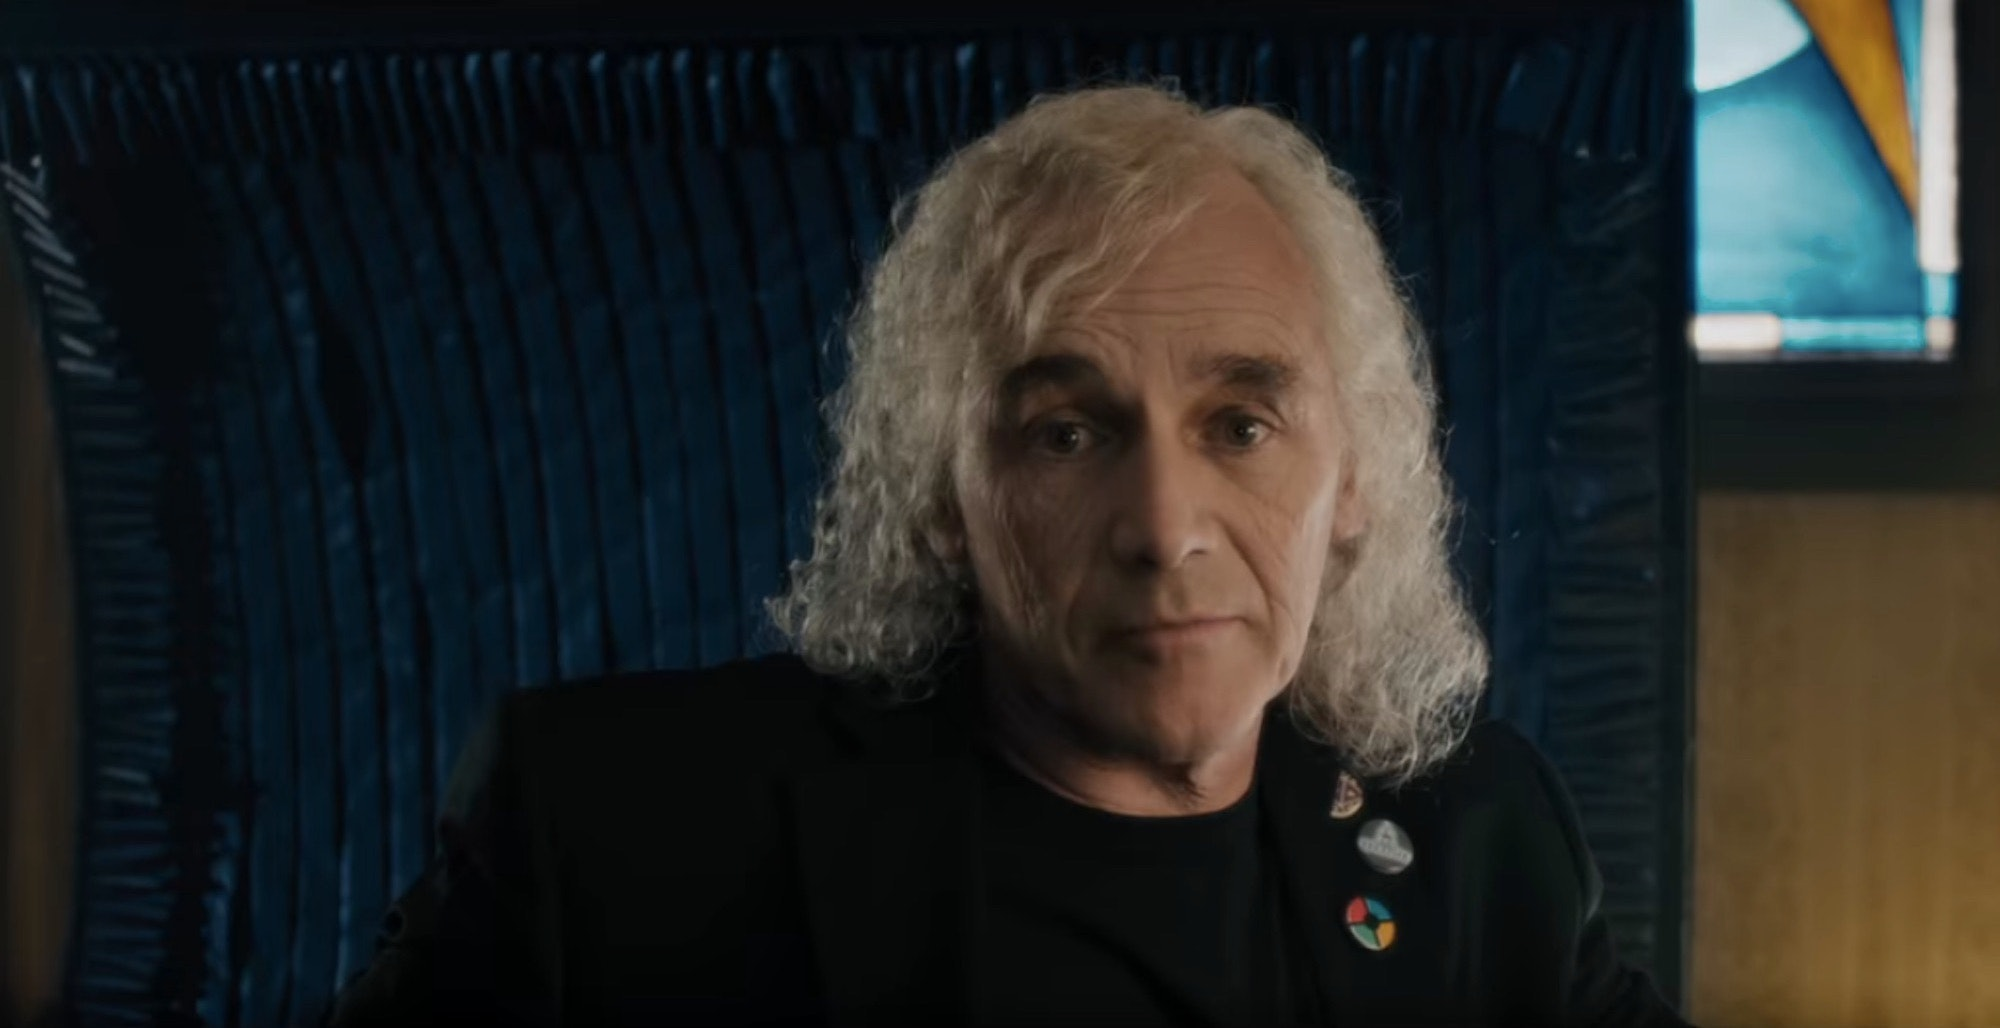 James Halliday (Mark Rylance) as he appears in the 'Ready Player One' movie.